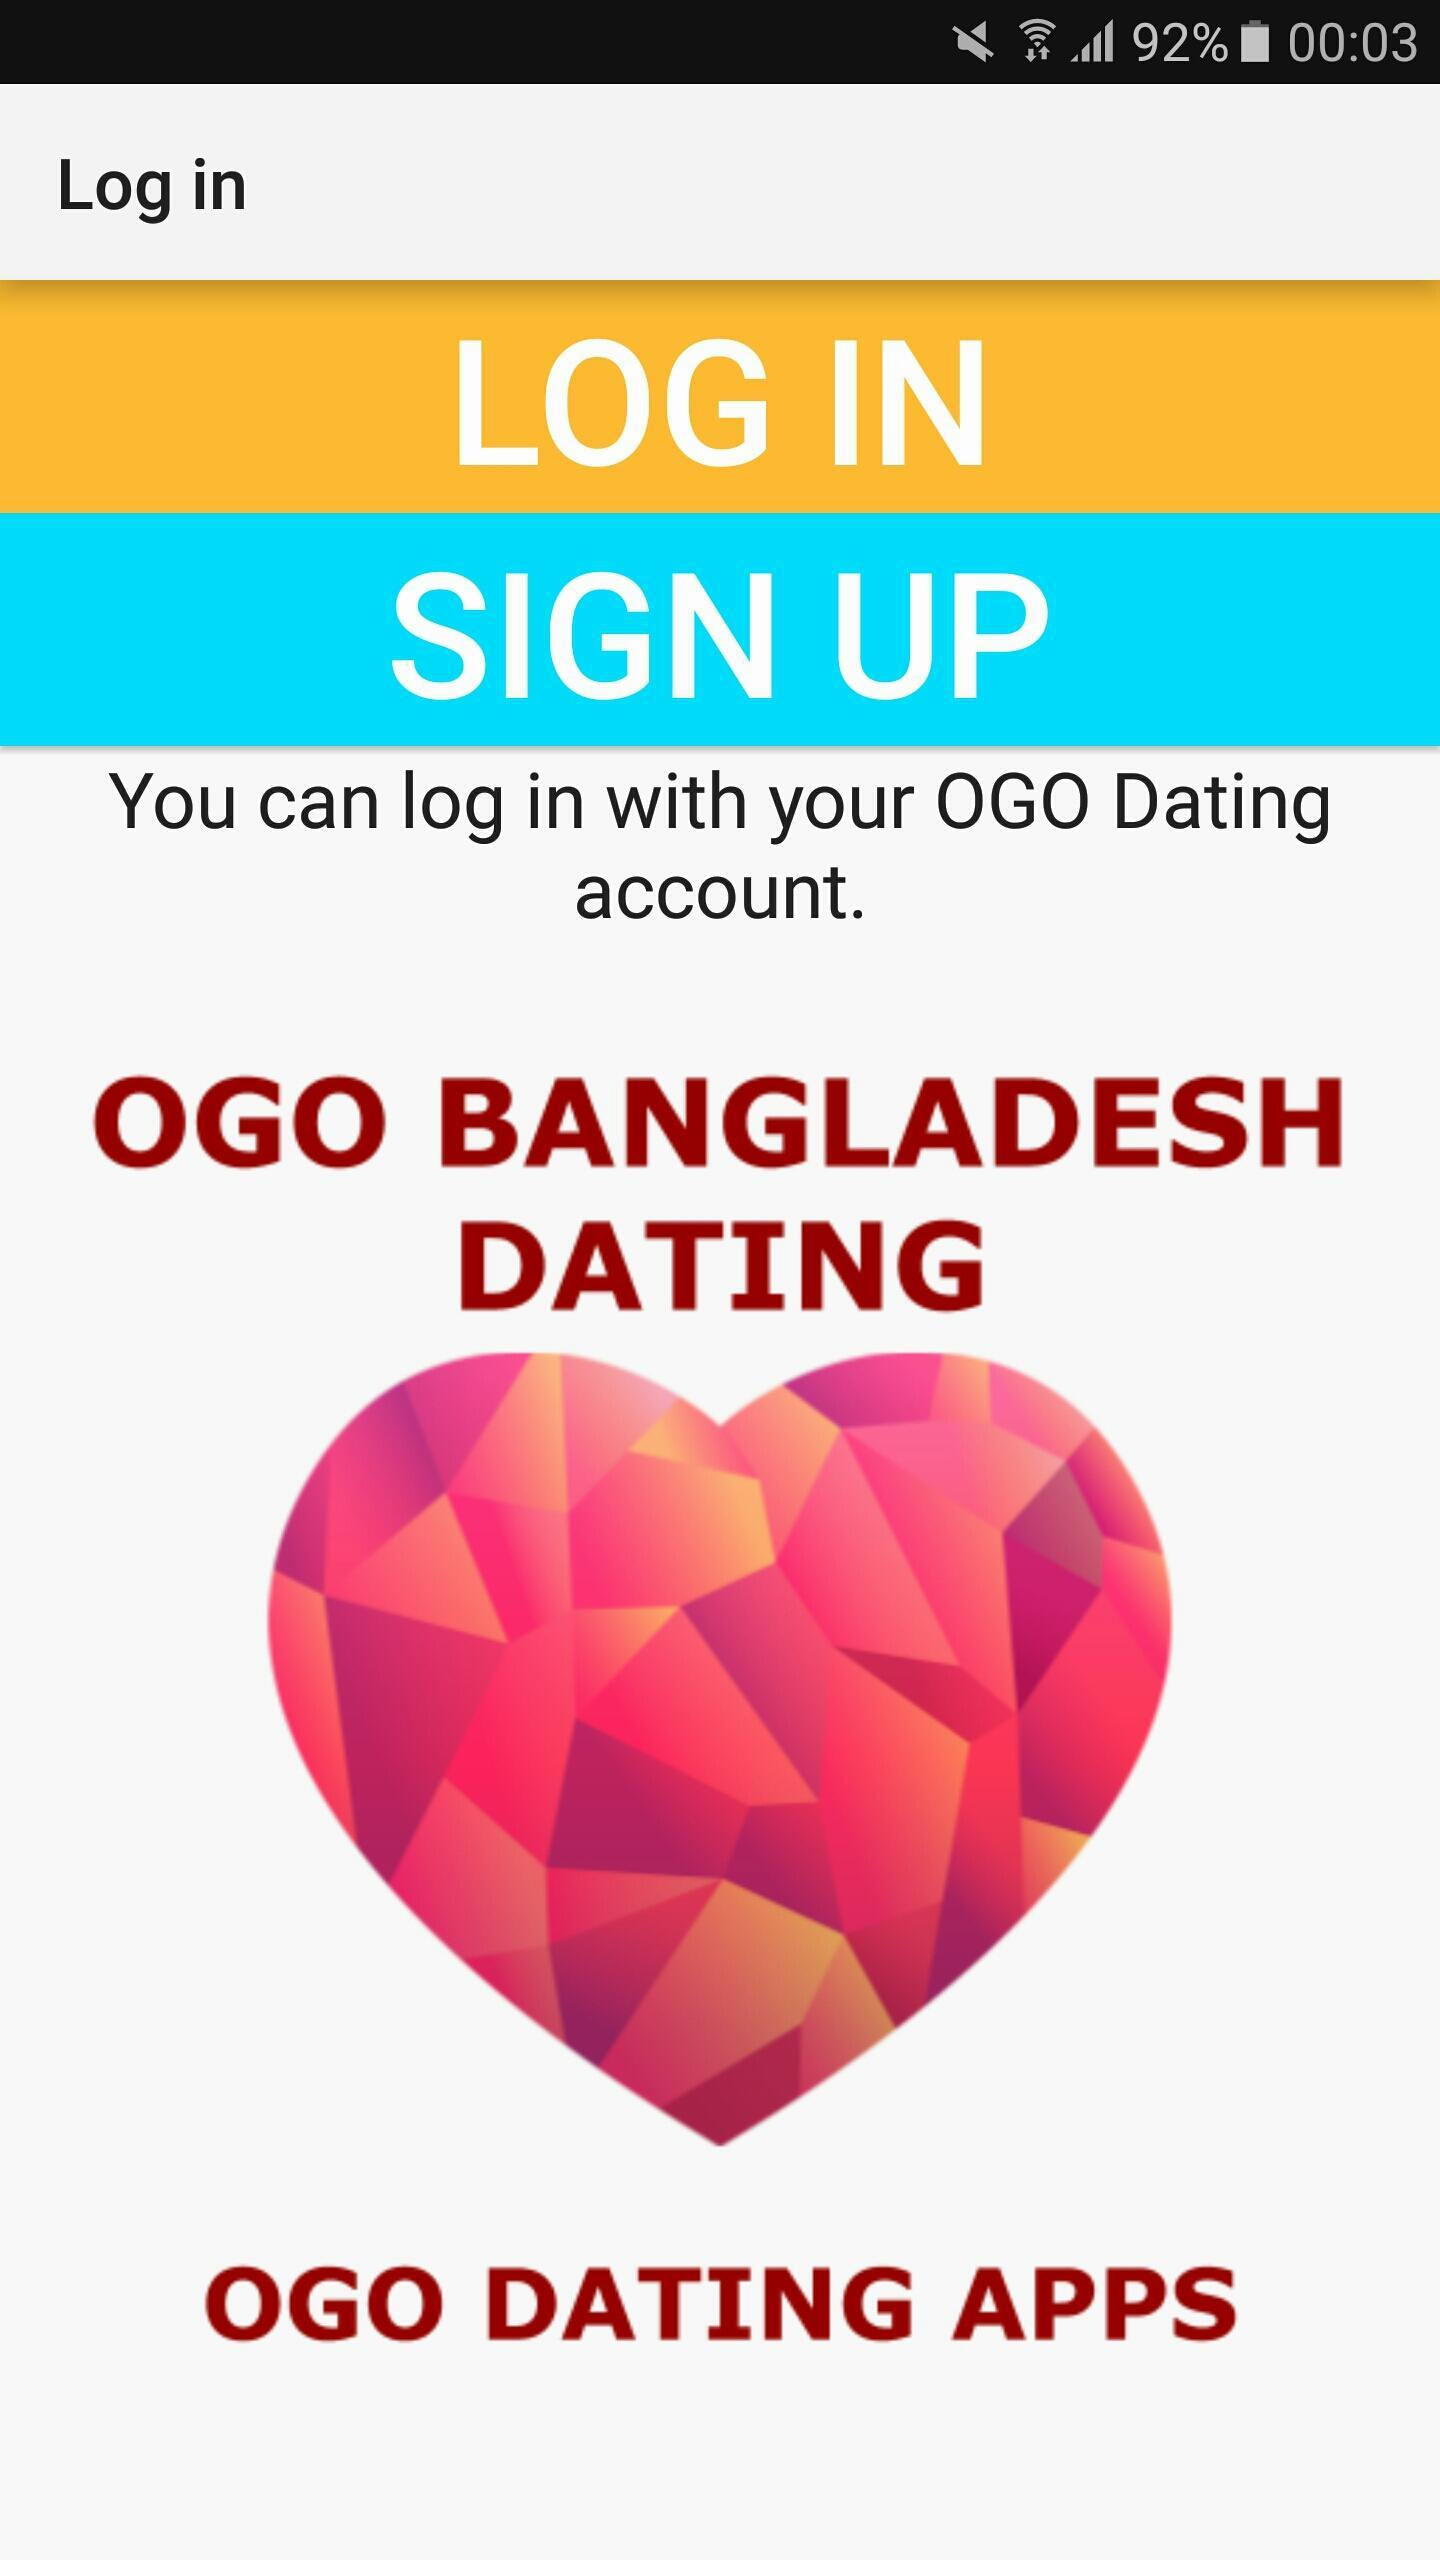 Bangladesh Dating Site - OGO for Android - APK Download